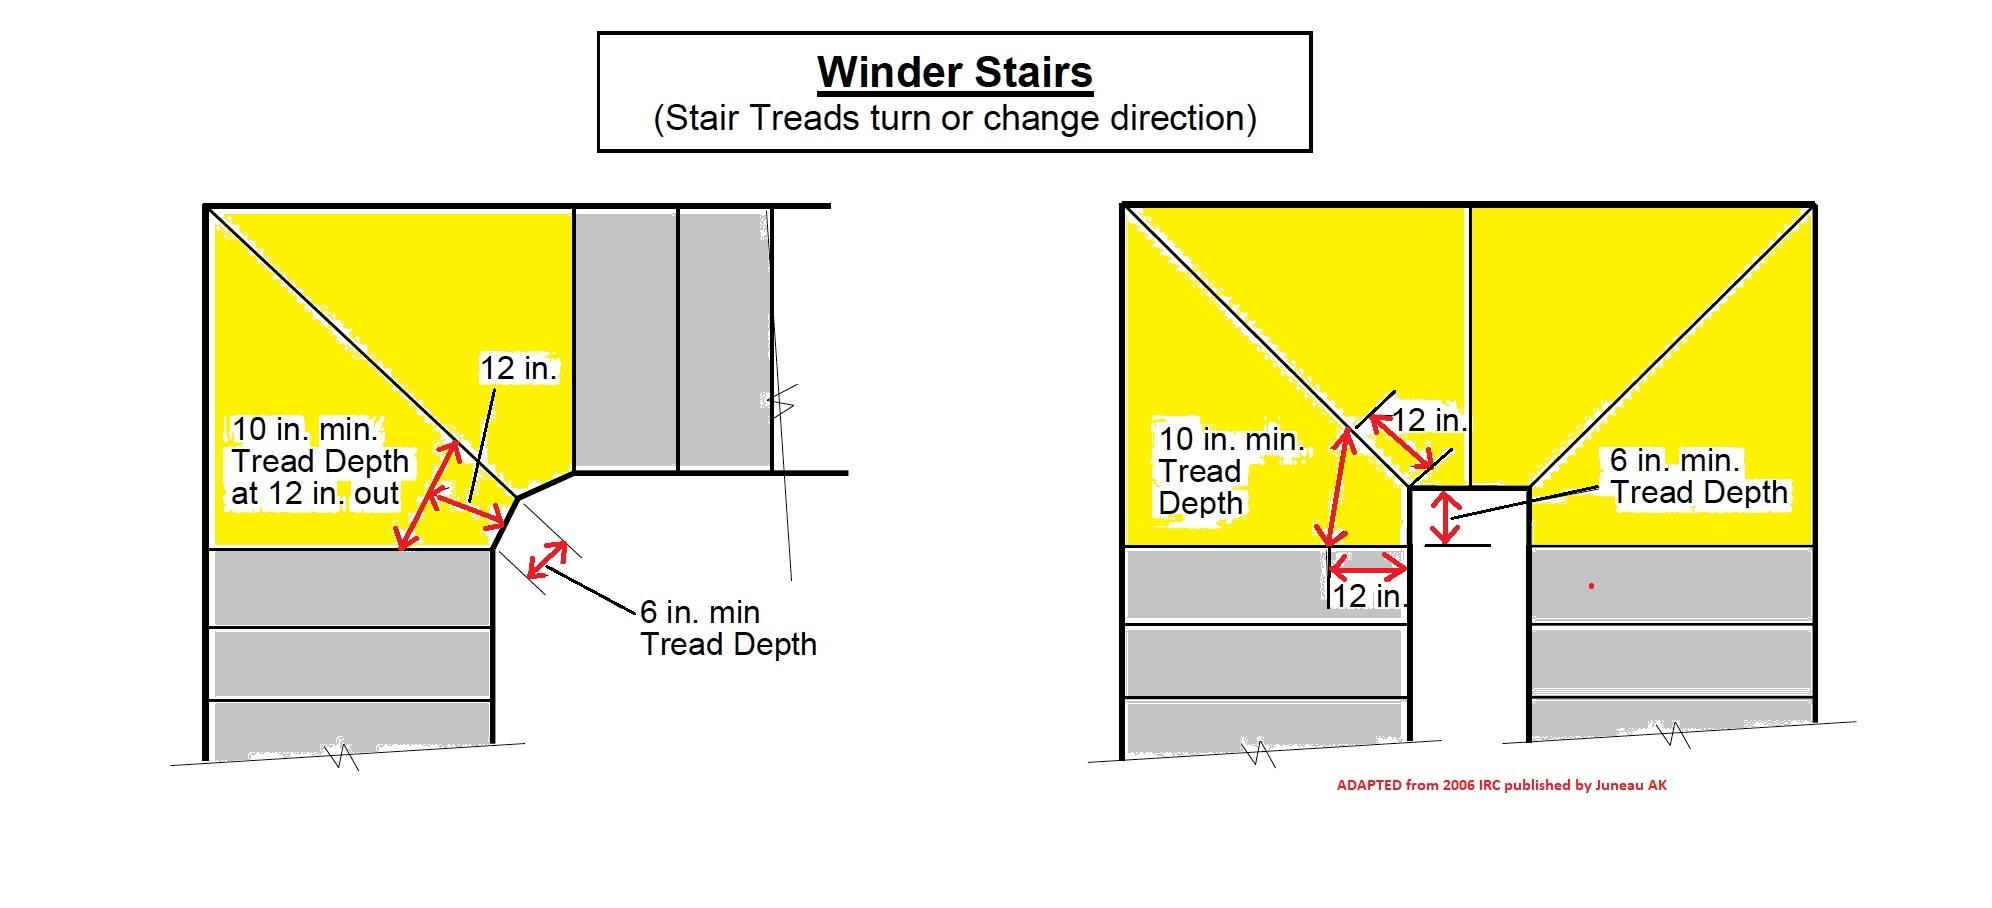 hight resolution of winder stair tread dimensions from 2006 irc c inspectapedia com adapted from juneau